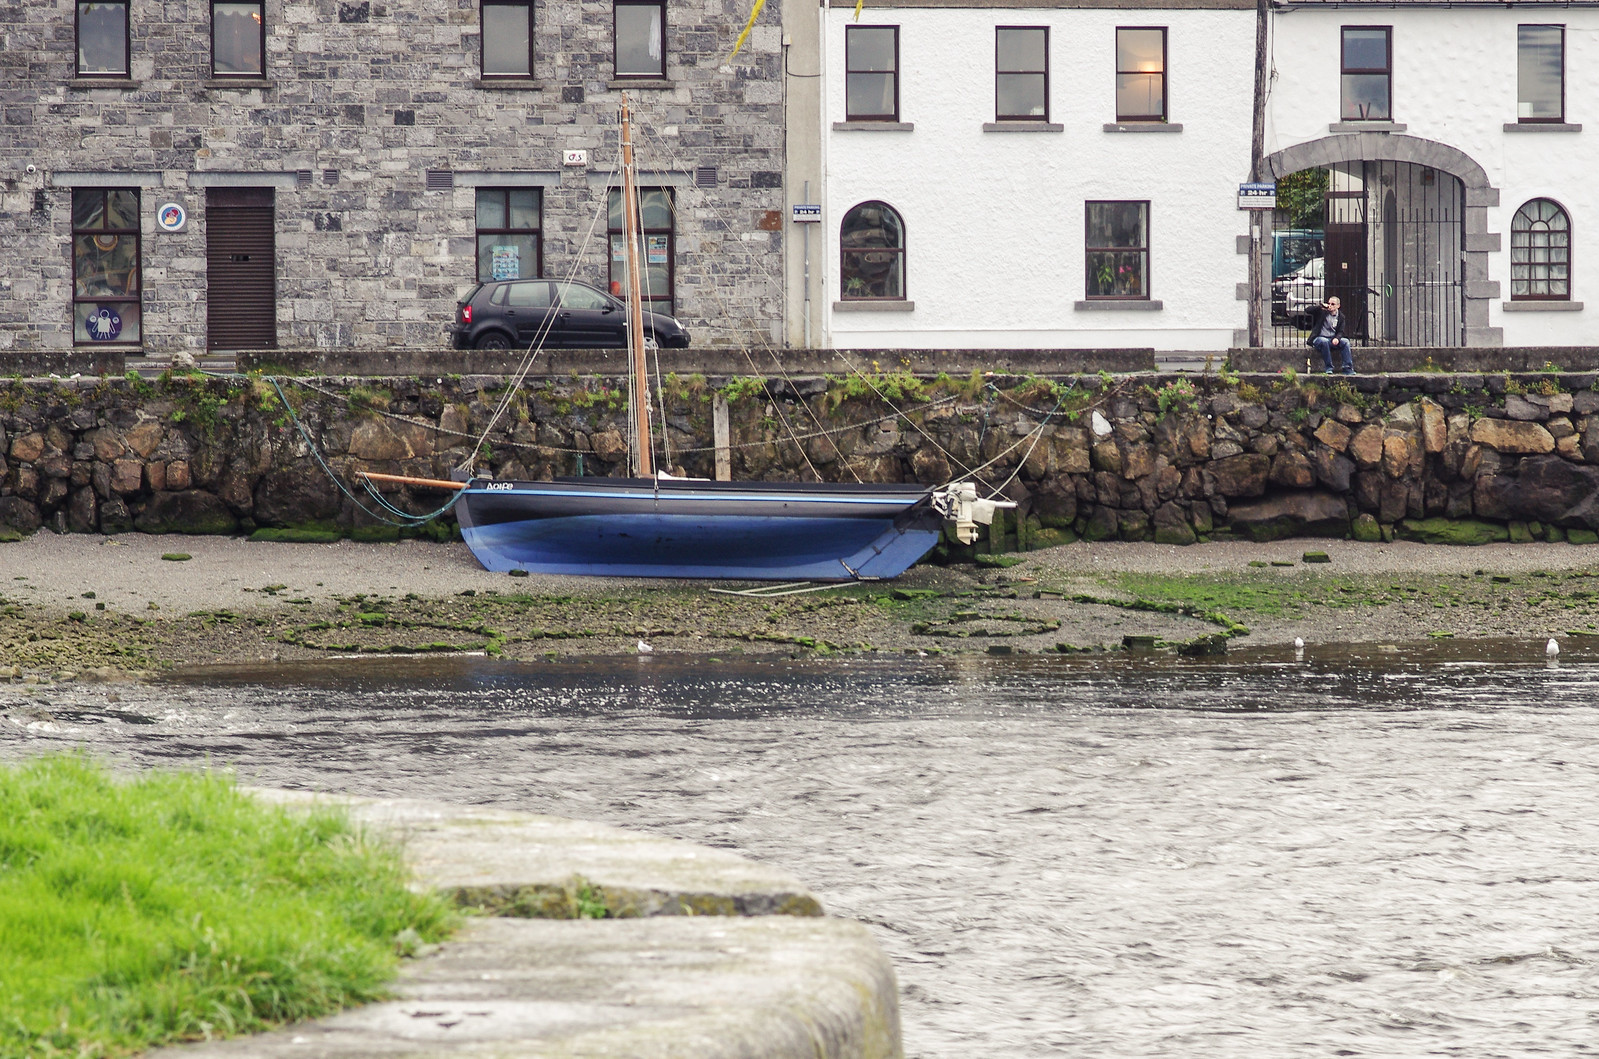 Galway - The dock